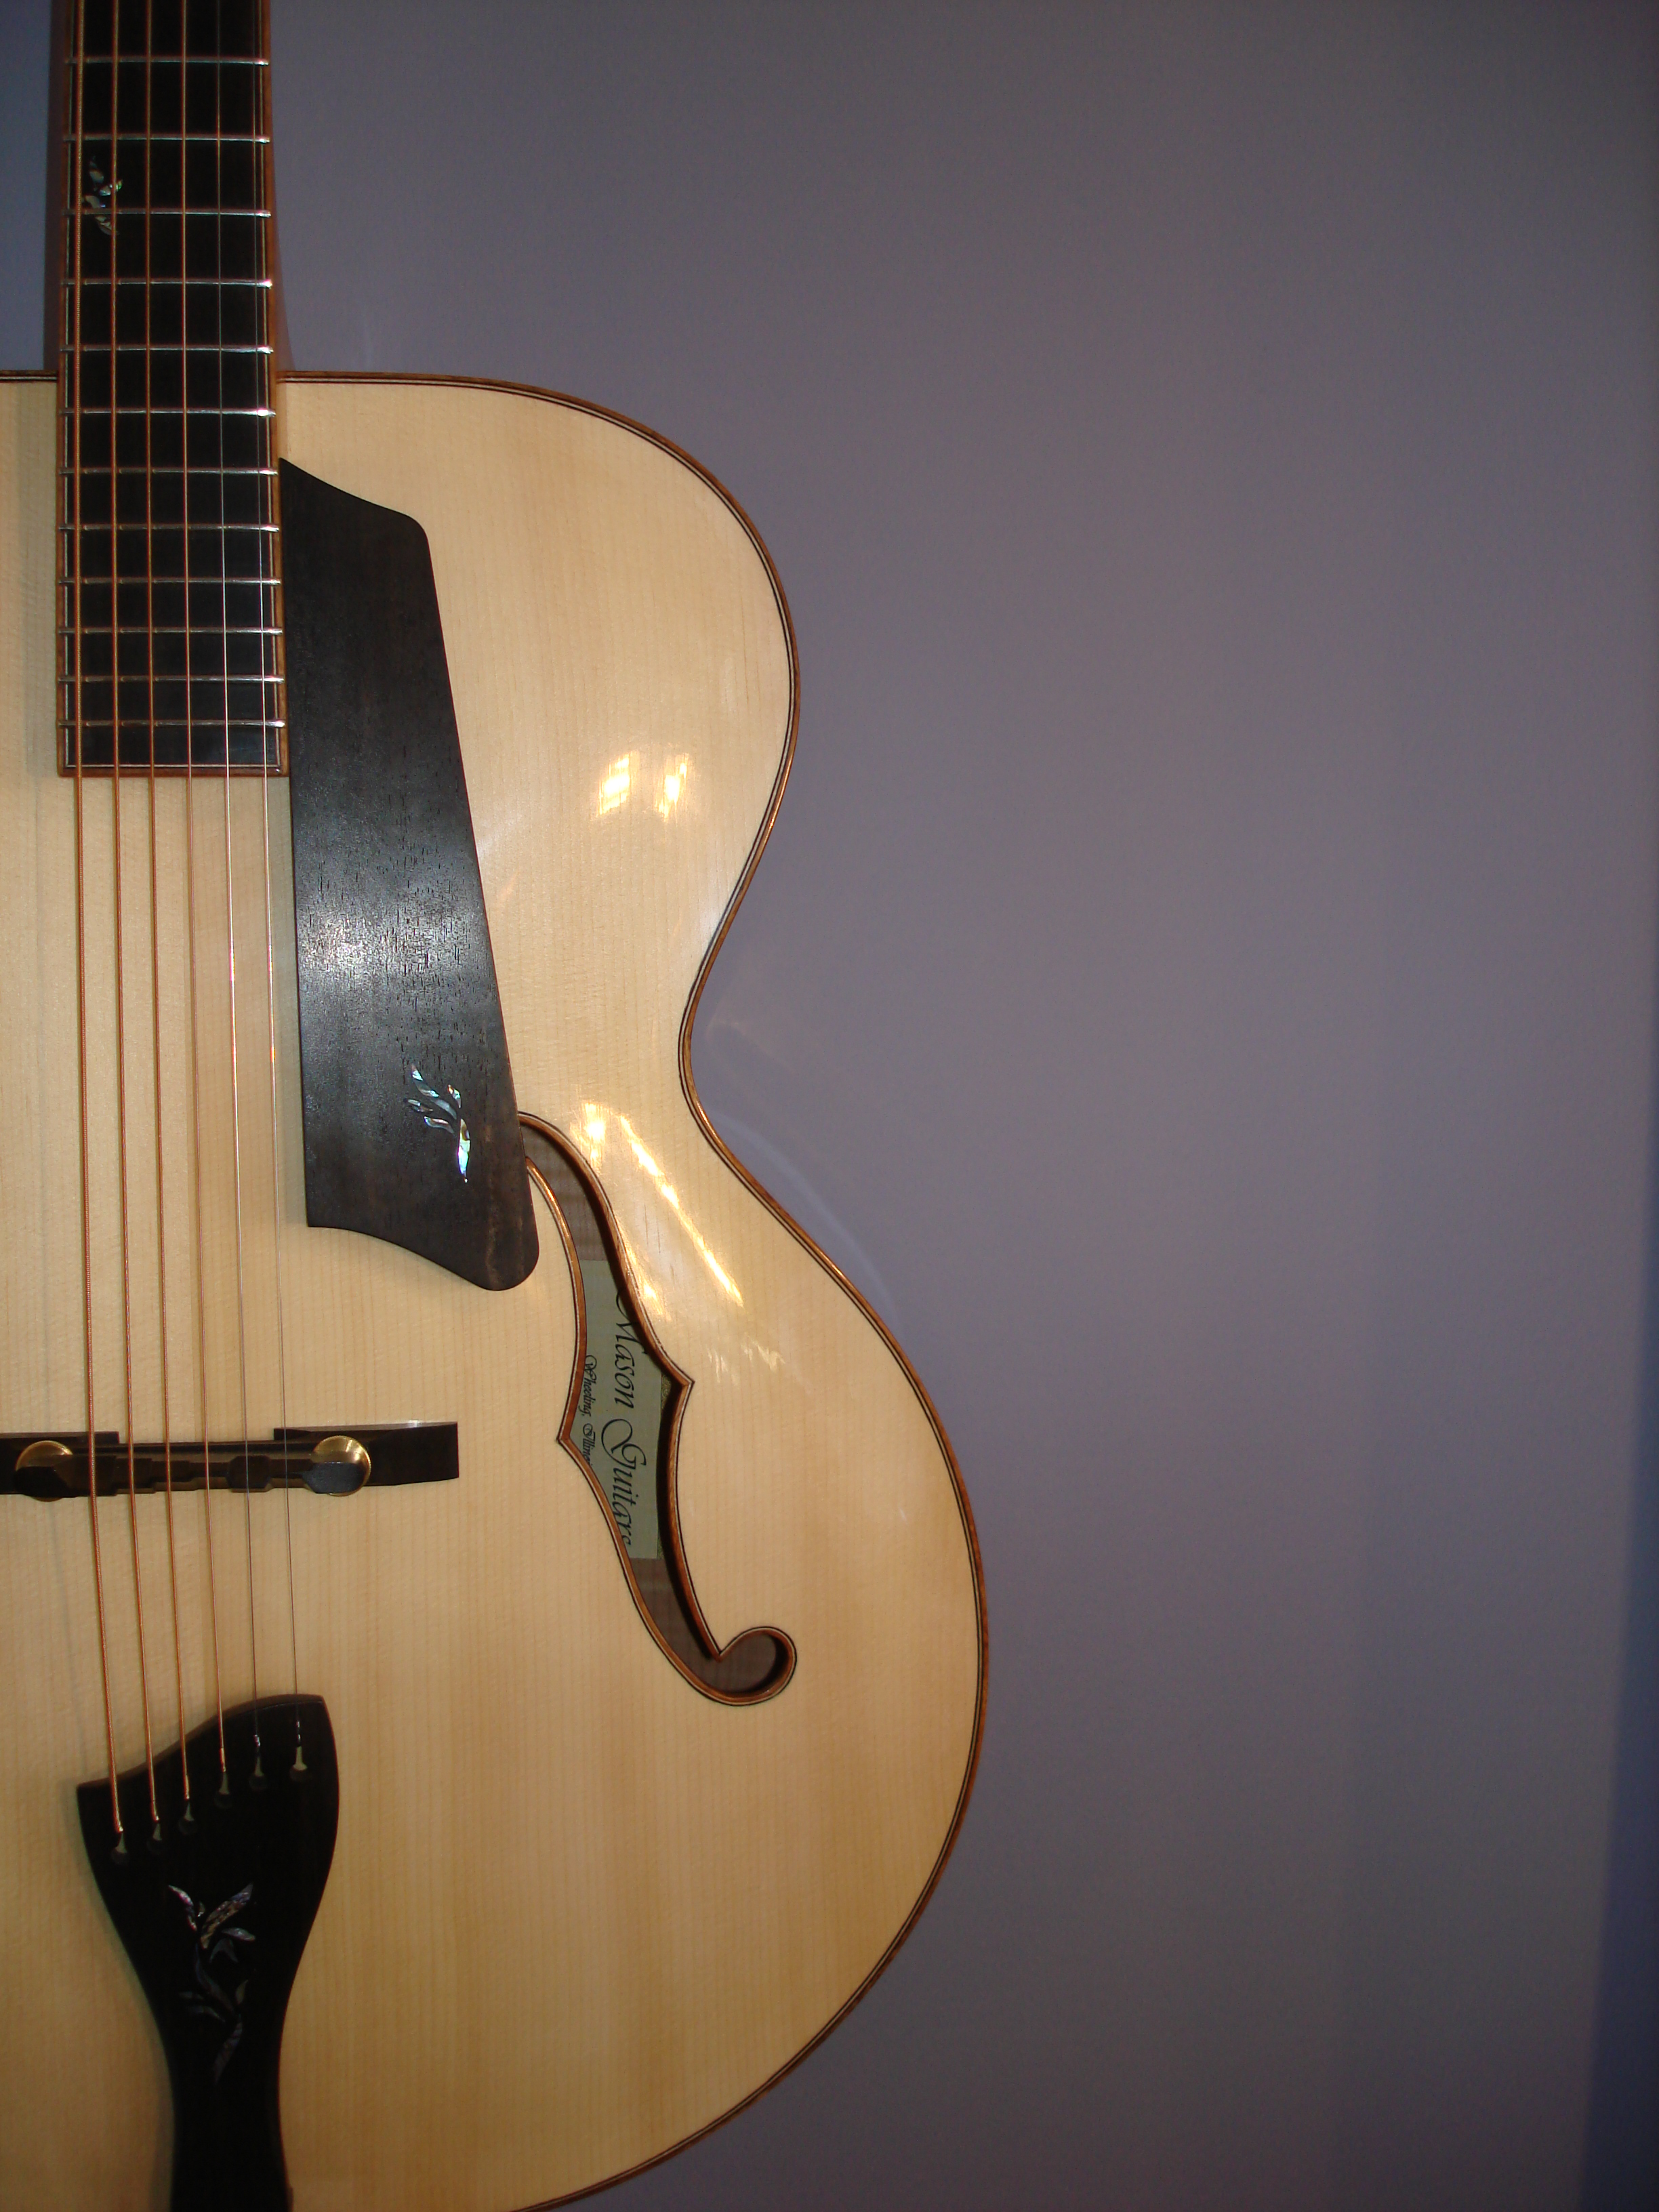 Archtop:  Half Body Front